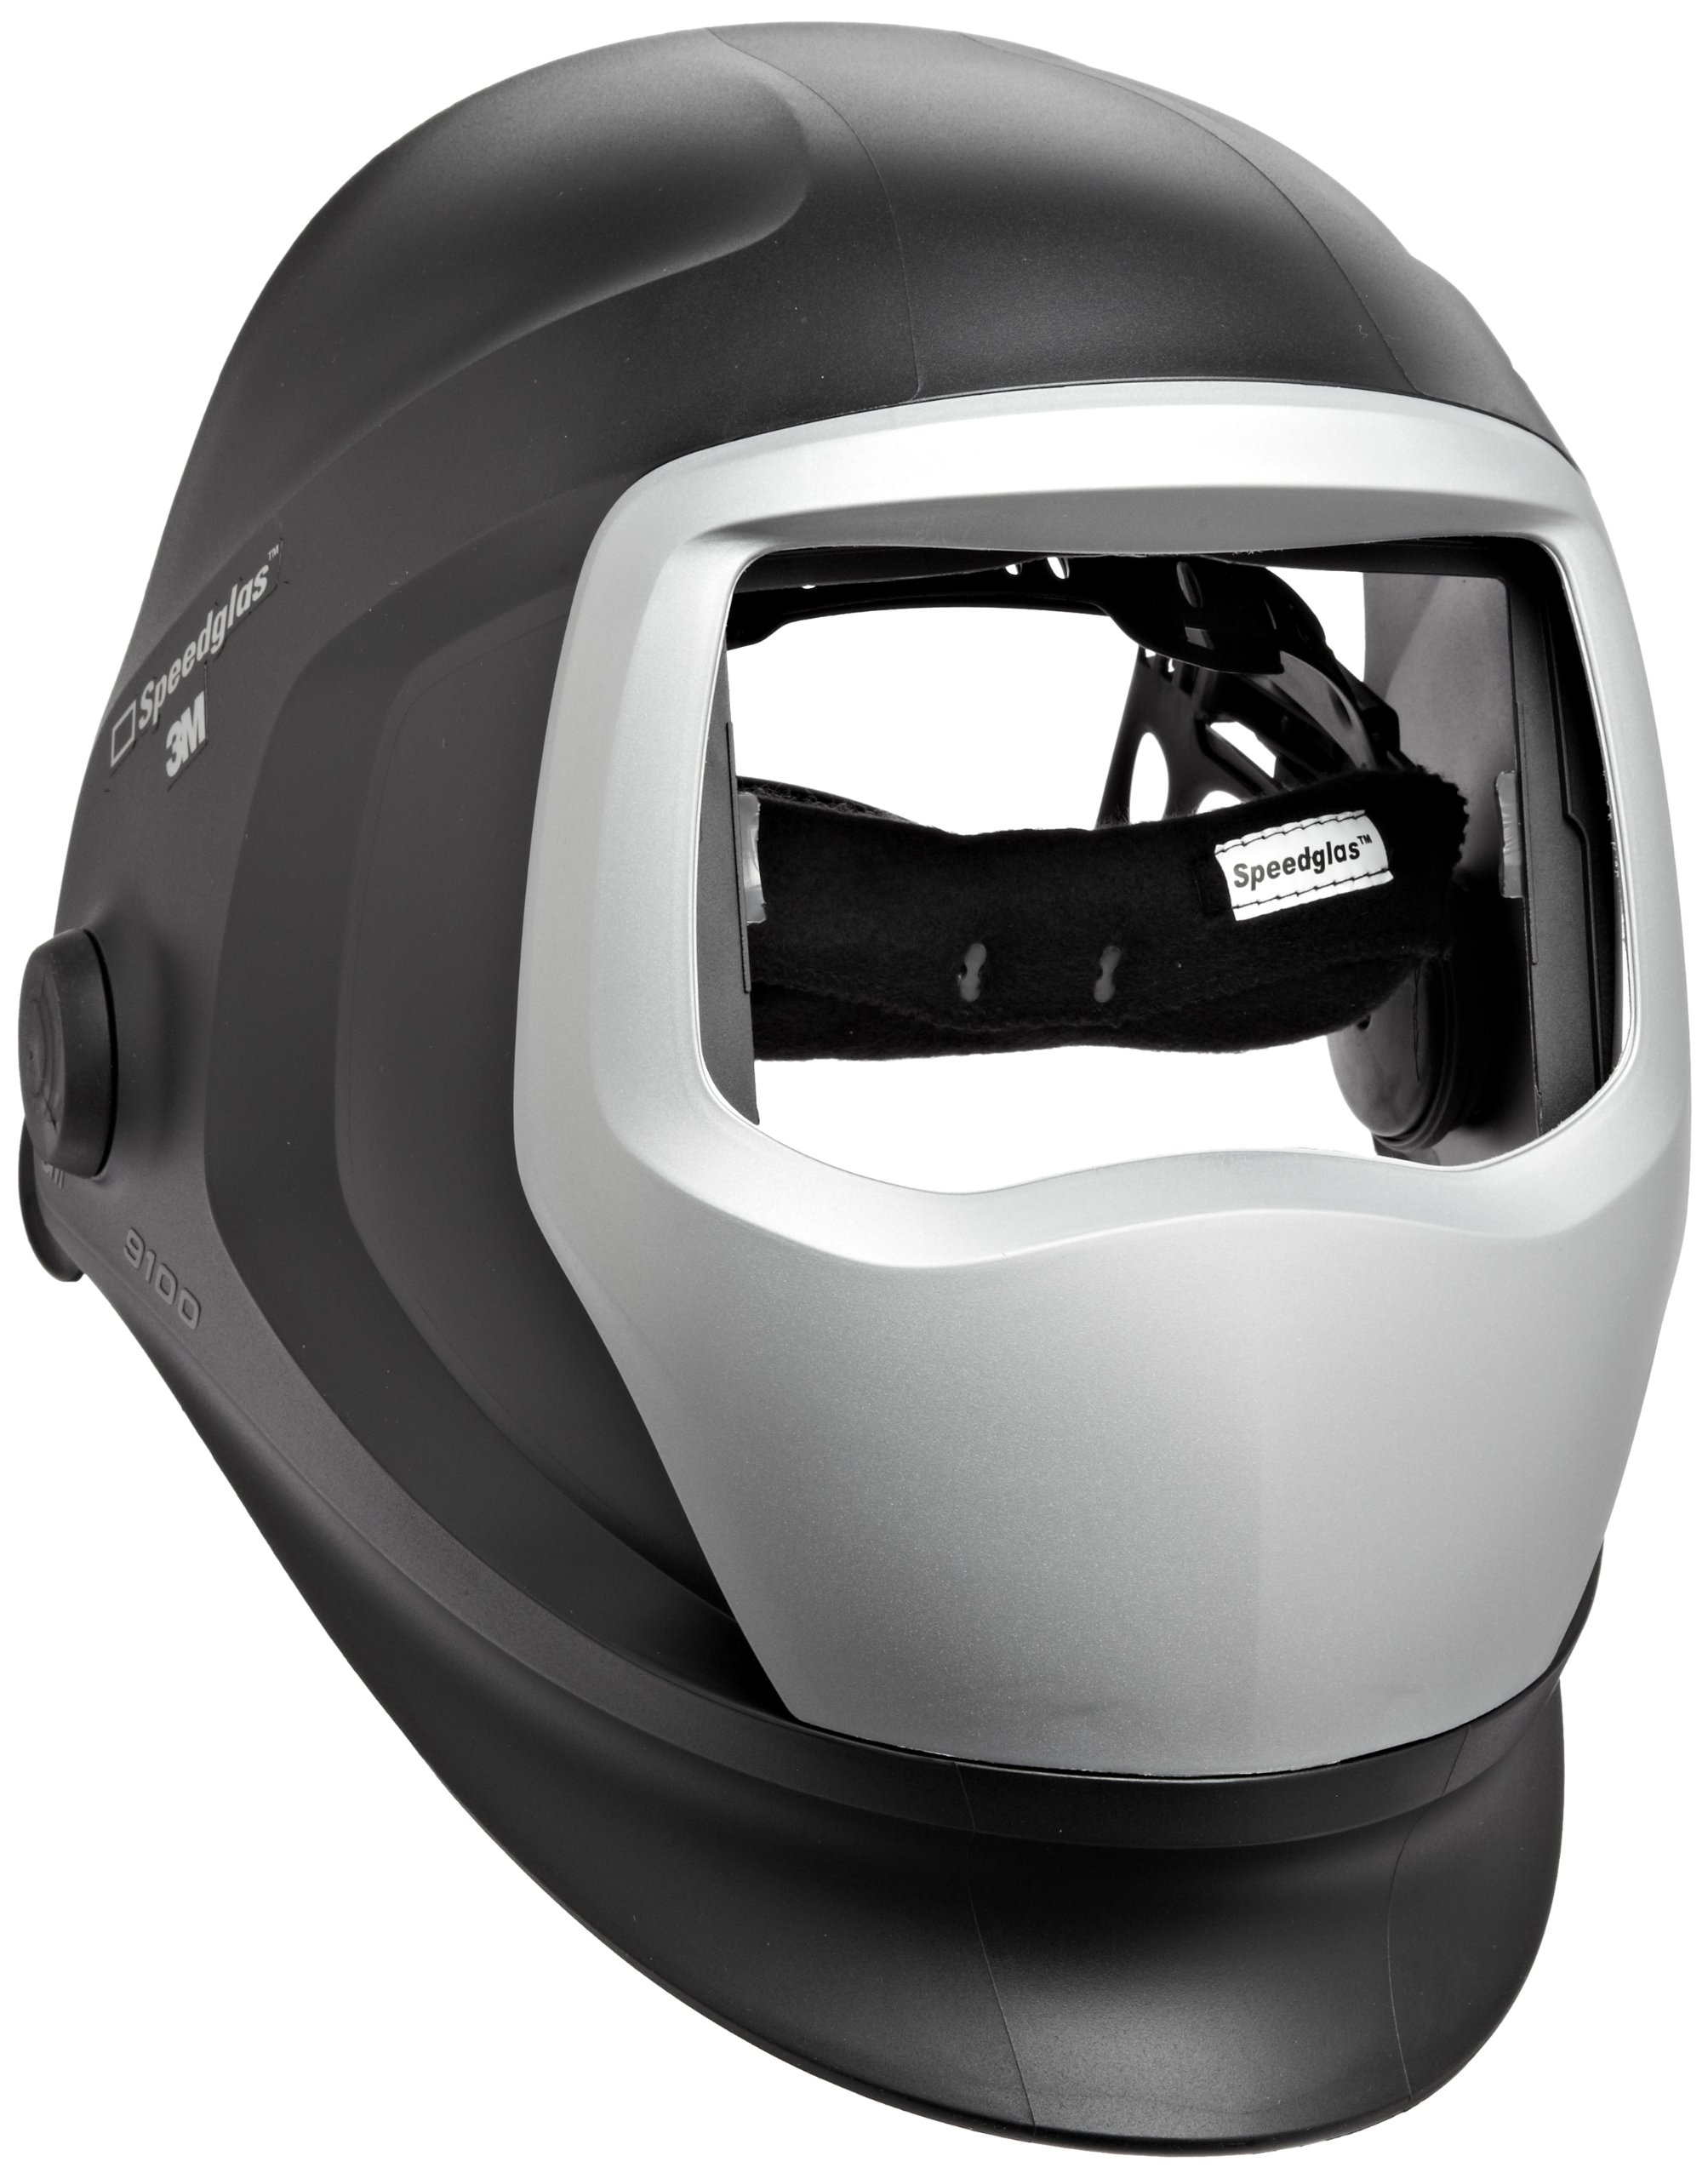 3M Speedglas Welding Helmet 9100, Welding Safety 06-0300-51, with Headband and Silver Front Panel